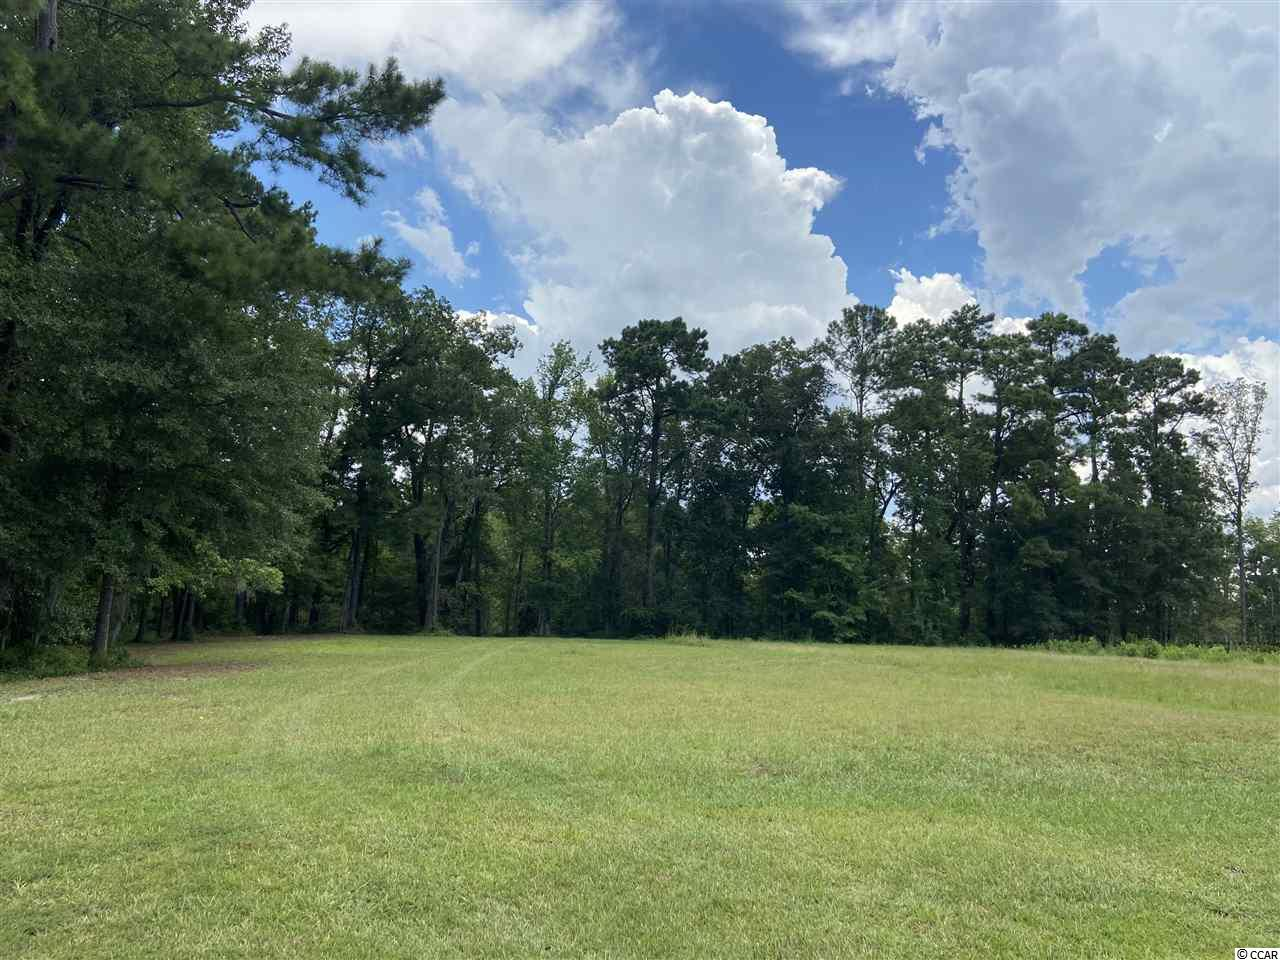 MOST PERFECT SETTING ON THIS LARGE - OVER 1 ACRE HOMESITE OVER LOOKING THE WACCAMAW RIVER COMING FROM THE WEST AND NORTH AND SOUTH ALONG THE INTRACOASTAL WATERWAY!  BUILD ANYTIME!  COMMUNITY OFFERS SECURITY GATE, GORGEOUS CLUBHOUSE AND RESORT STYLE POOL, EXERCISE ROOM, PICNIC AREA, BOAT RAMP, BOAT AND RV STORAGE, TENNIS COURTS, BASKETBALL COURT, AND KIDDIE PLAYGROUND!  HOMESITE OFFERS - WALK WAY BRIDGE TO THE INTRACOASTAL WATERWAY WITH BOAT DOCK FOR LARGE VESSELS AND A SEPARATE FLOATING DOCK!  HOMESITE FOR THE HOME IS CLEARED AND READY FOR BUILDING!  THIS IS A HIGH AND DRY LOT TO BUILD ON UNLIKE THE MANY OF THE OTHER HOMESITES ON THE WATERWAY!  COME BUILD YOUR DREAM HOME TODAY ON THE INTRACOASTAL AND WACCAMAW RIVER!